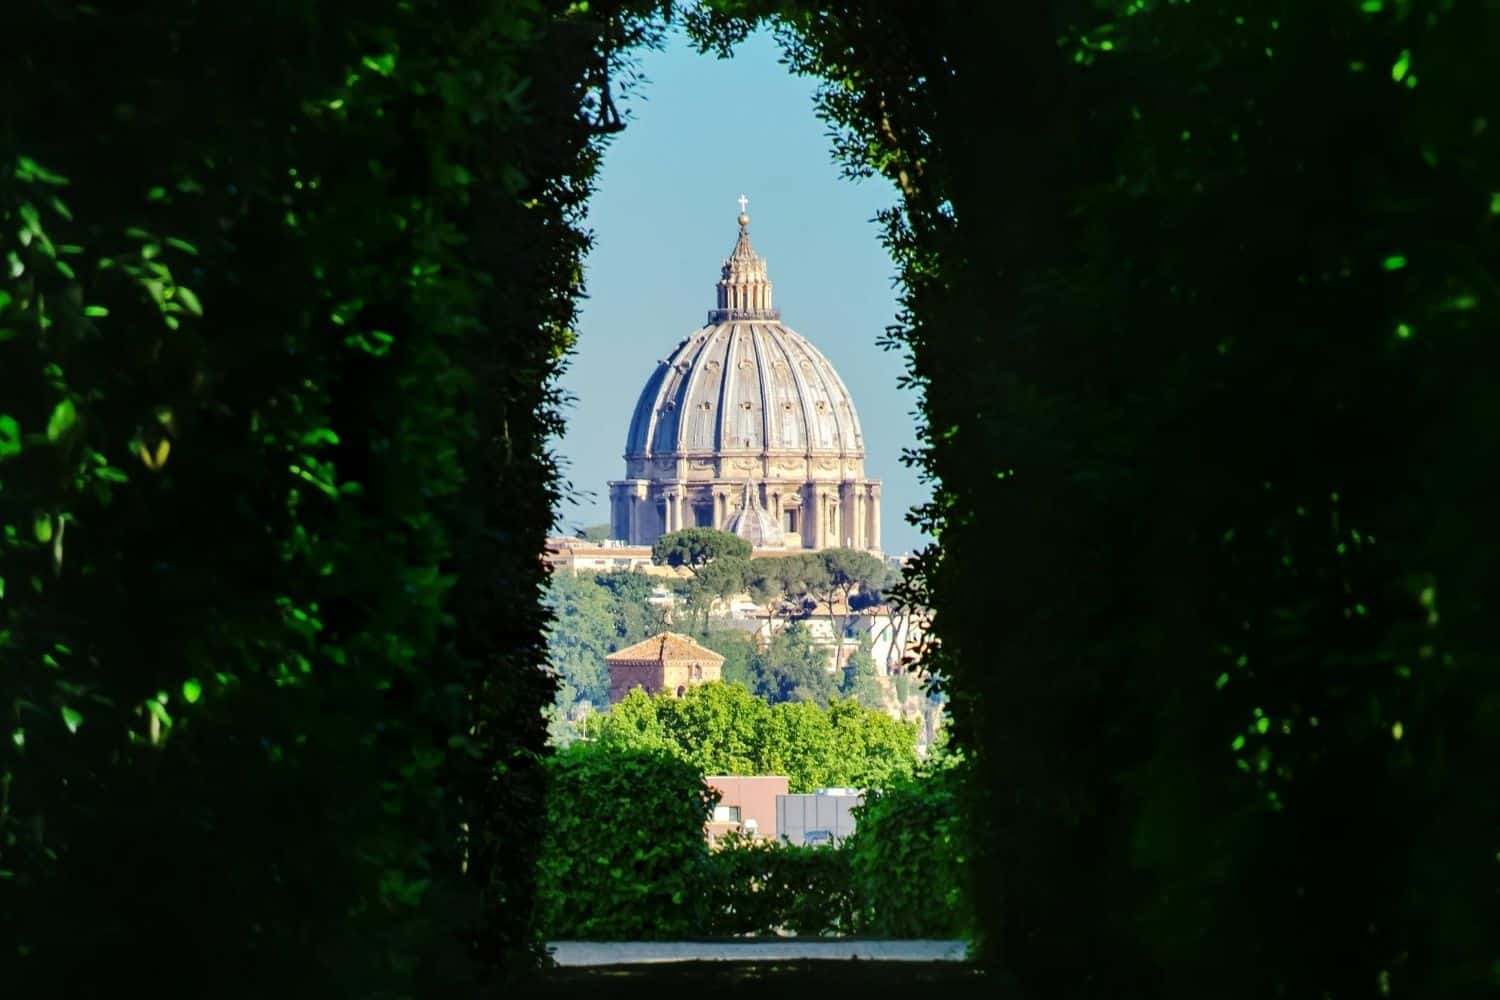 The Aventine Keyhole in Rome